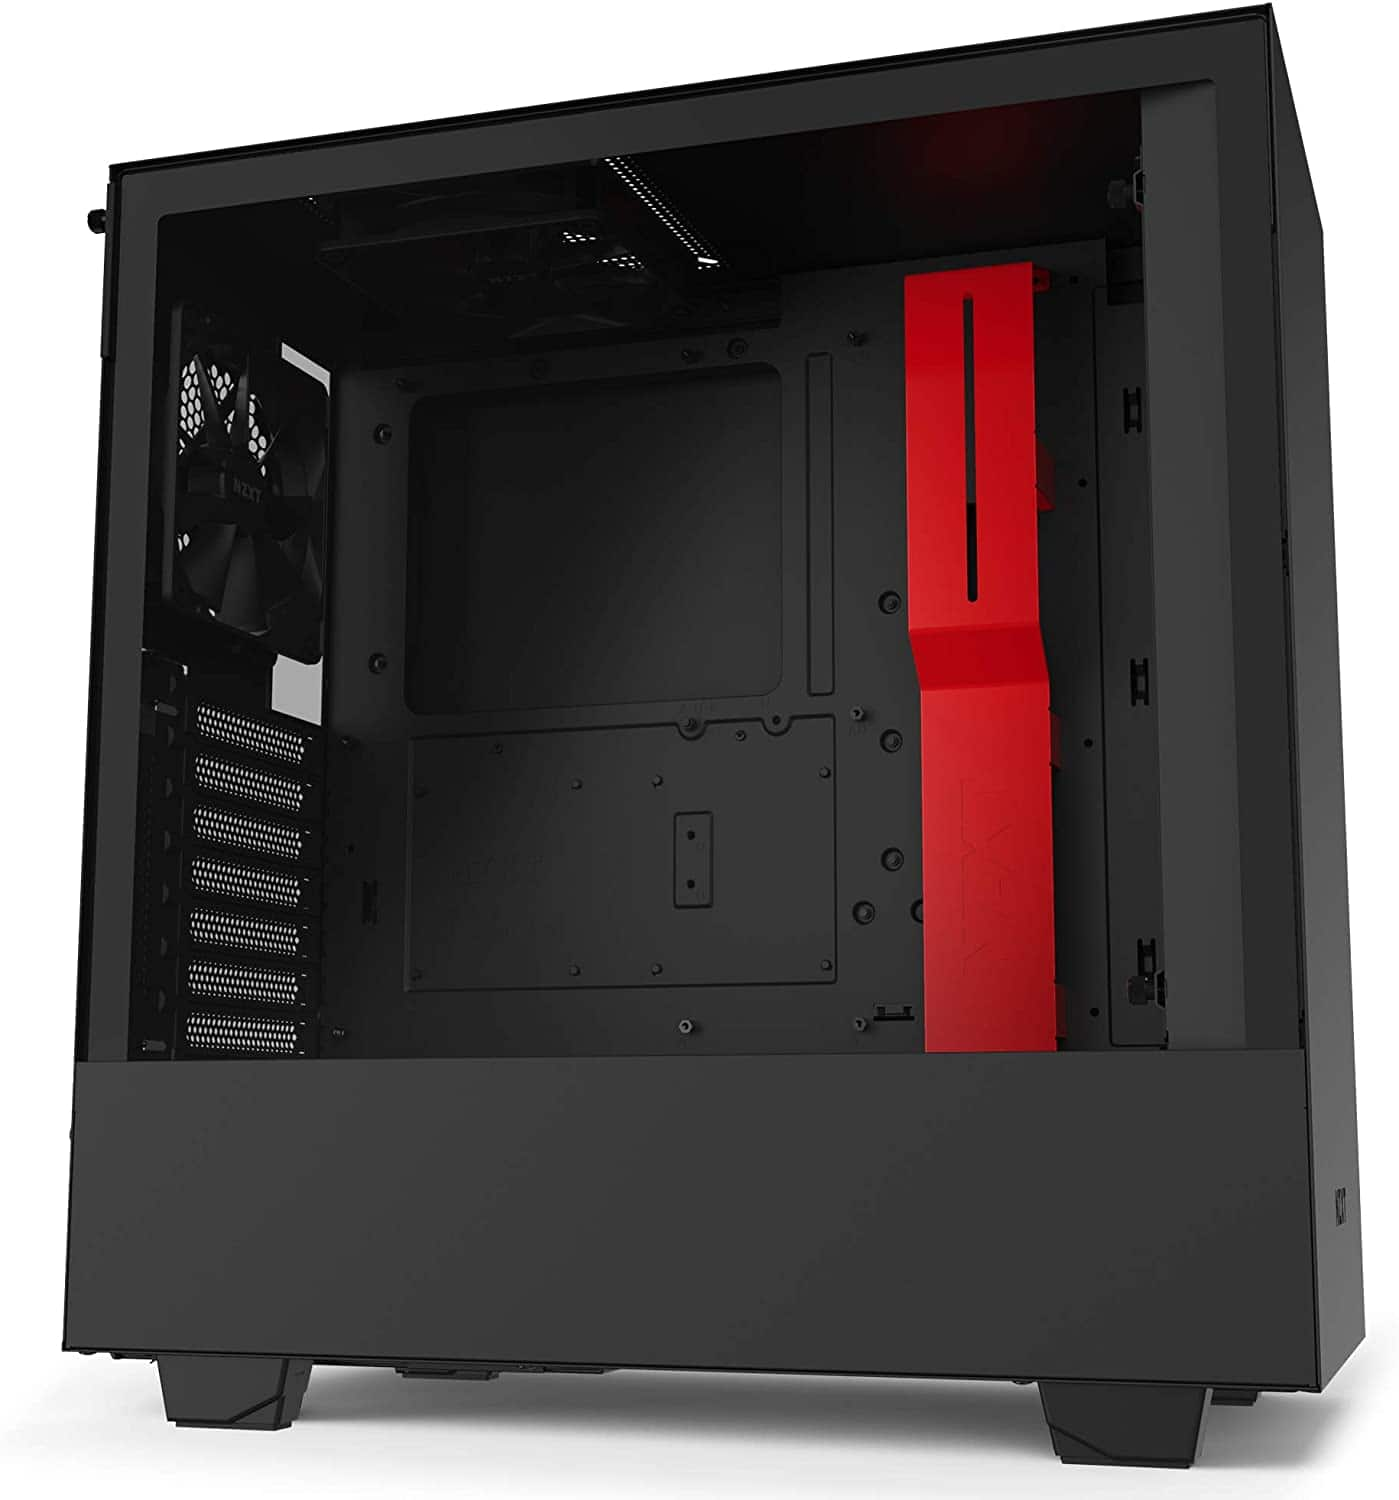 NZXT H510 Compact ATX Mid-Tower Case w/ Tempered Glass $68.83